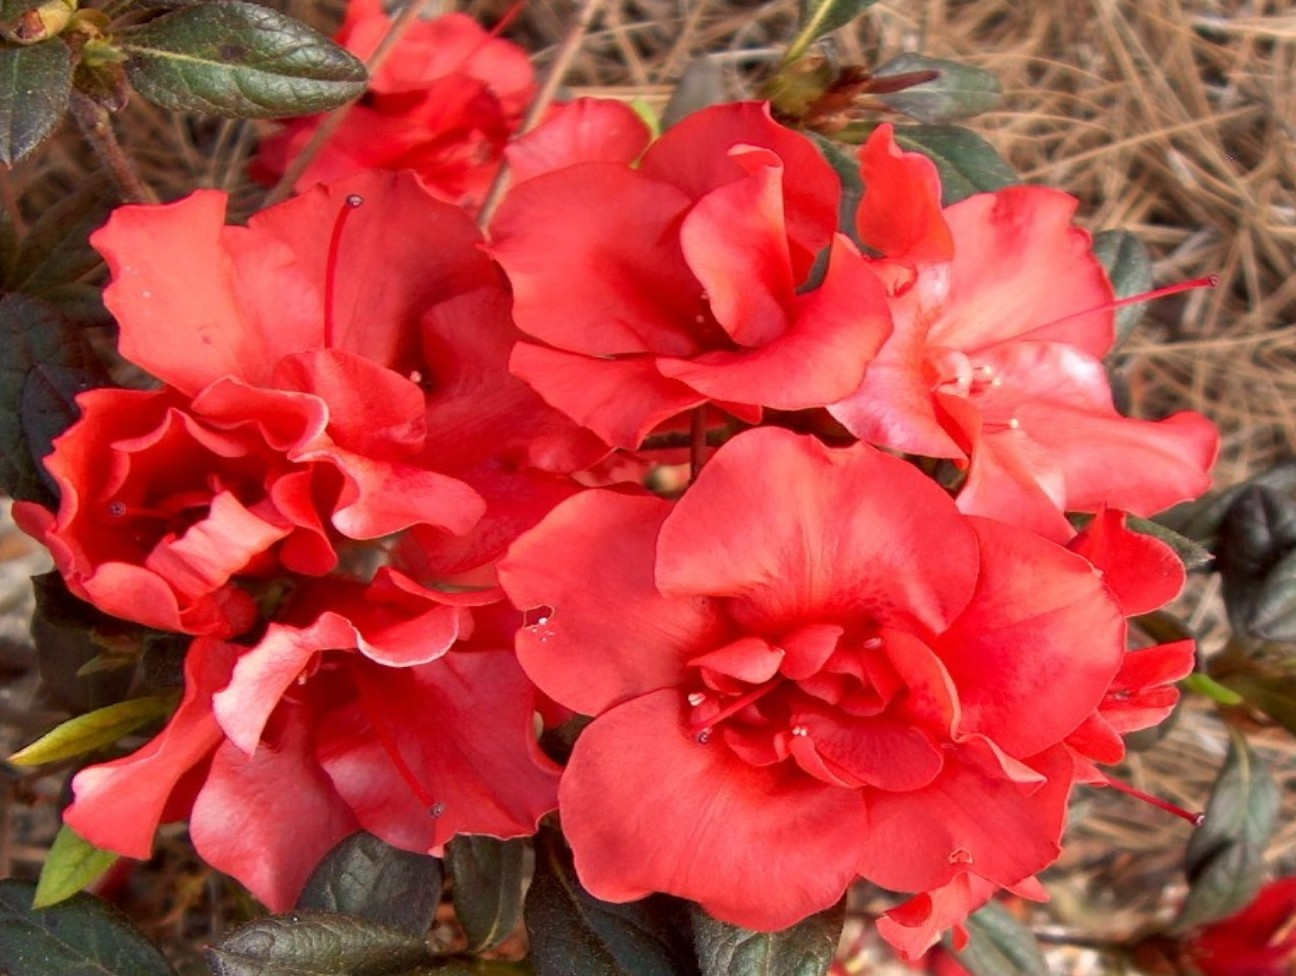 Rhododendron 'Autumn Embers' / Rhododendron 'Autumn Embers'